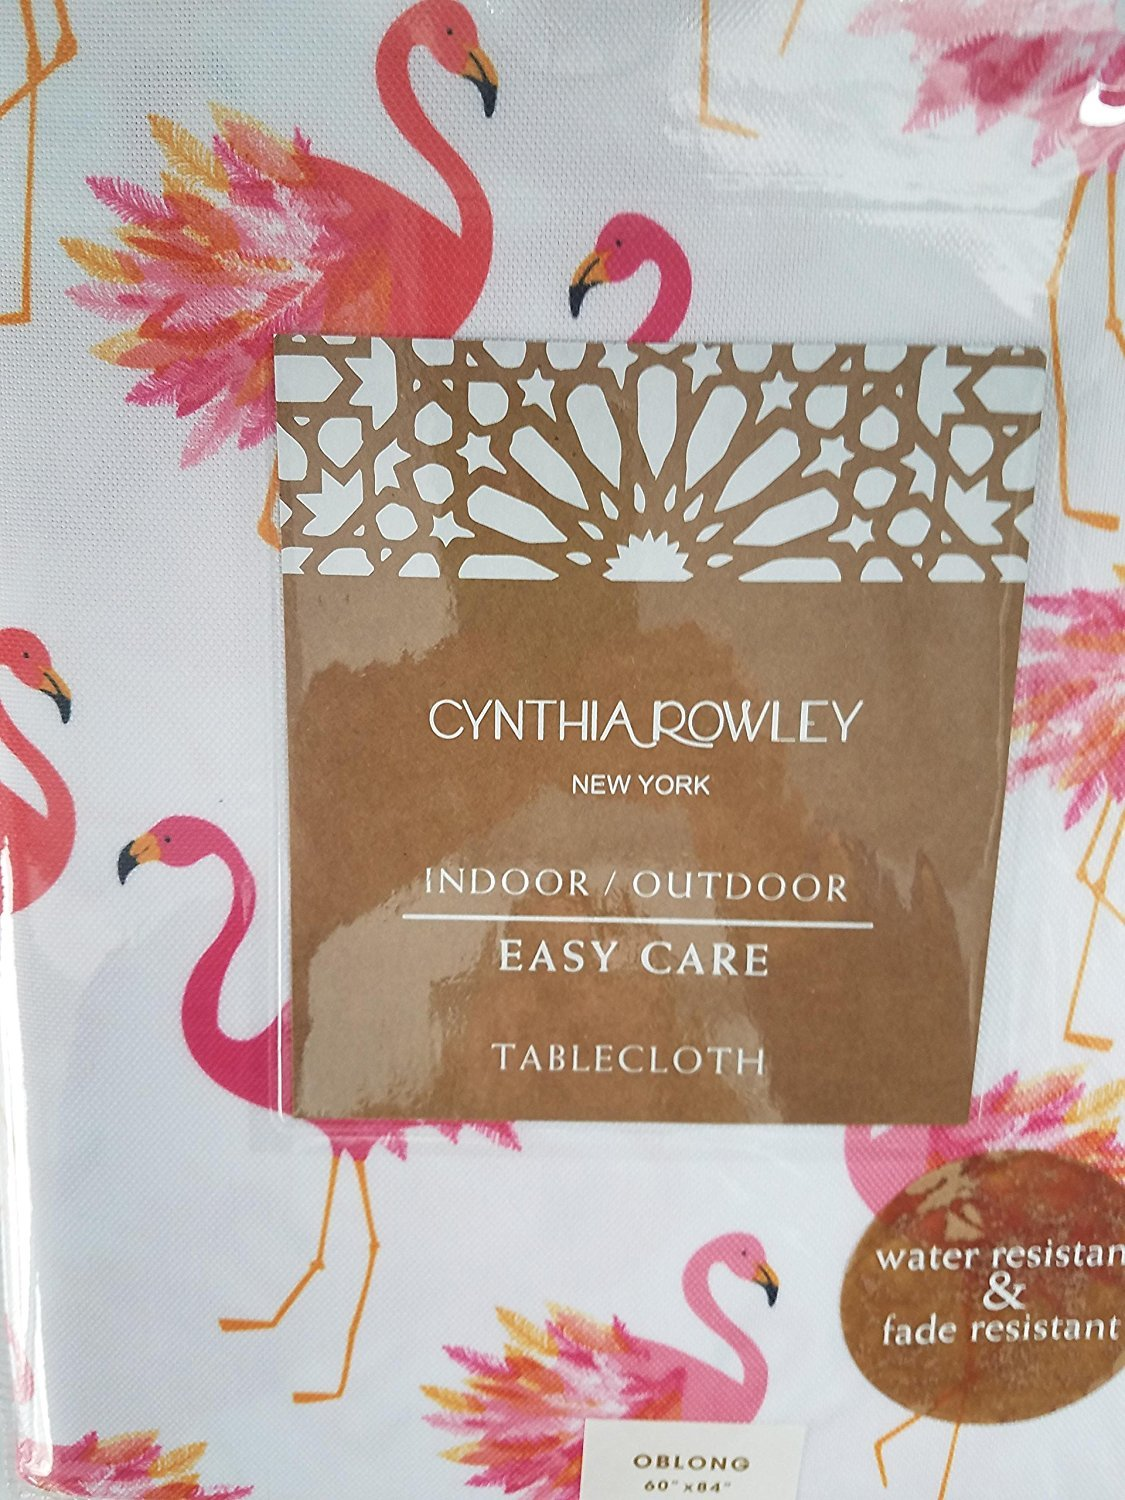 Cynthia Rowley Pink Flamingos Indoor/Outdoor Tablecloth 60 x 84 Oblong